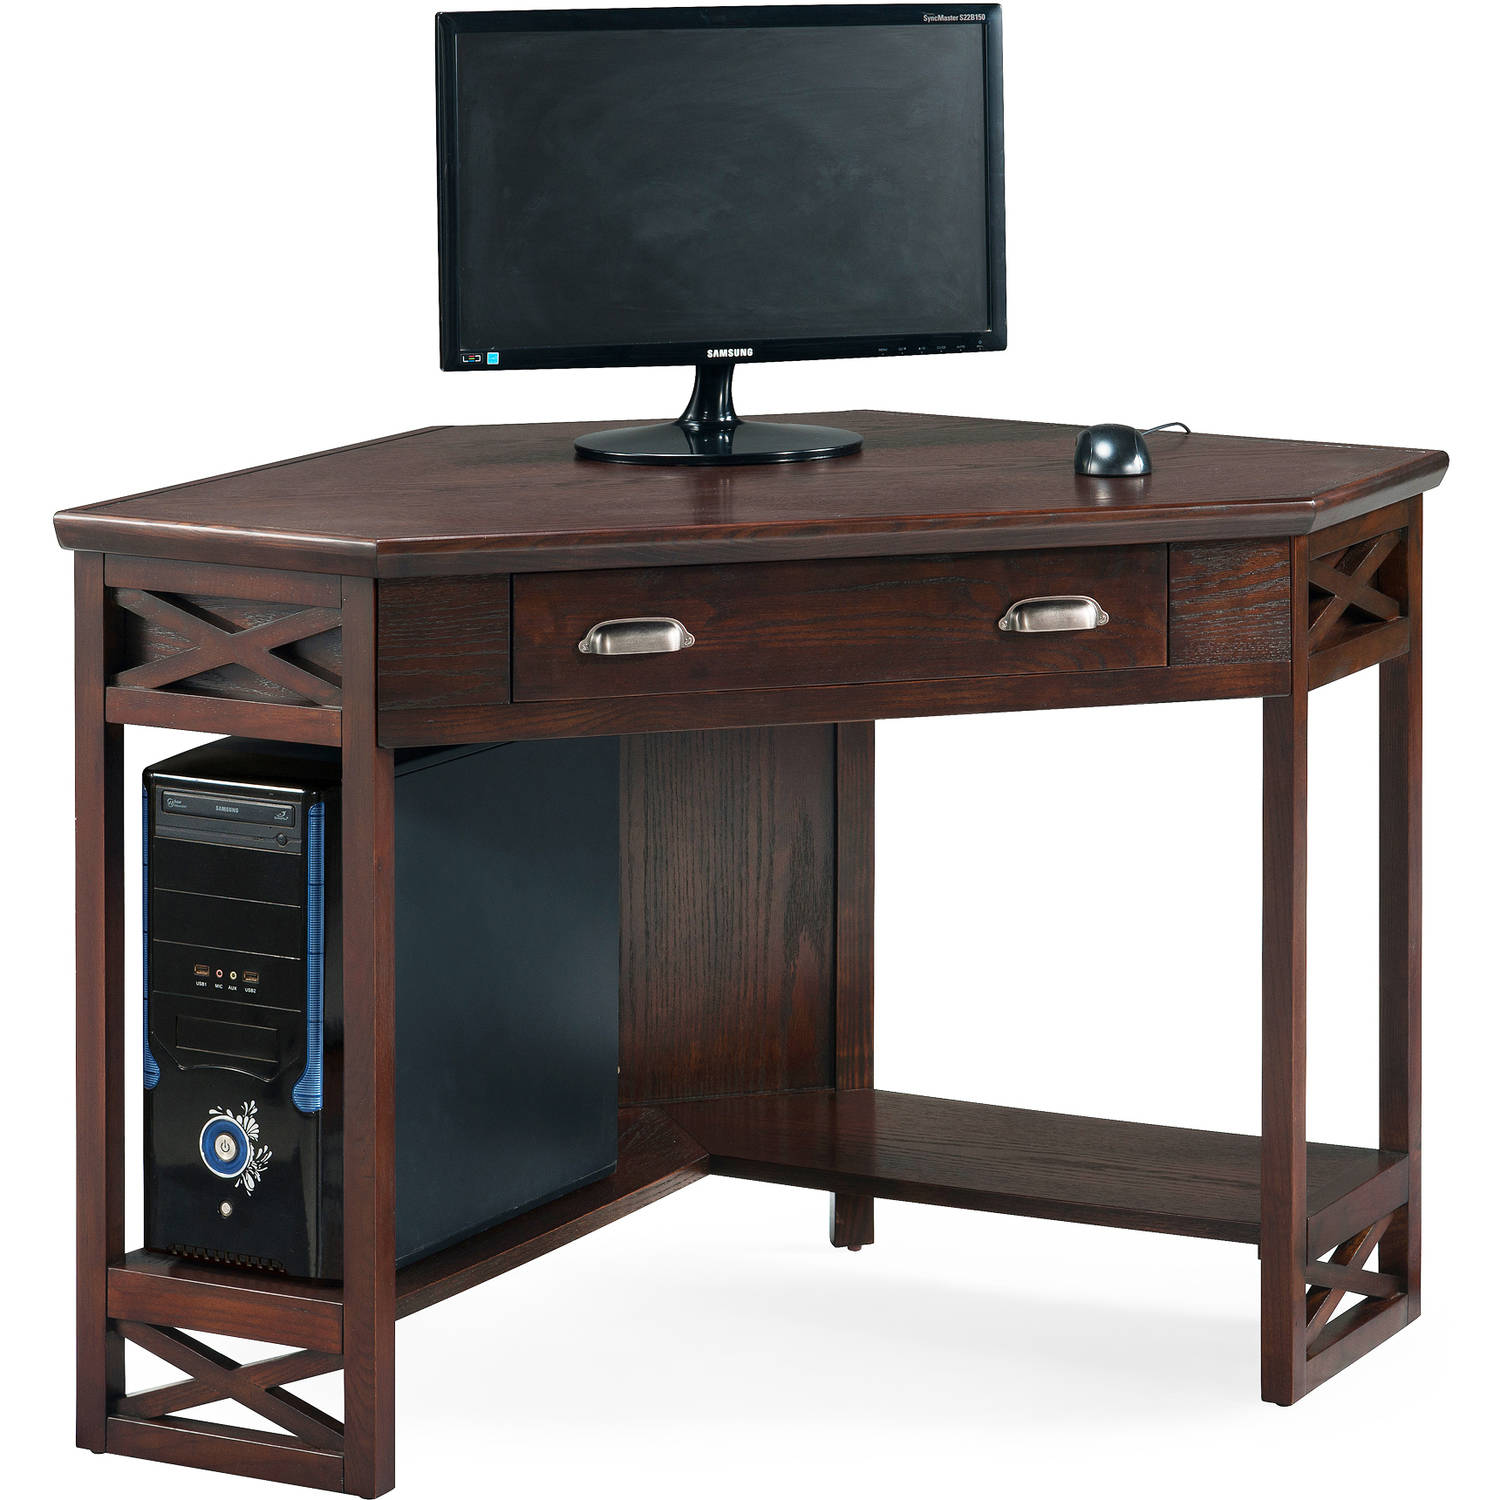 Leick 48 in. Corner Computer Writing Desk Chocolate Oak by Leick Furniture